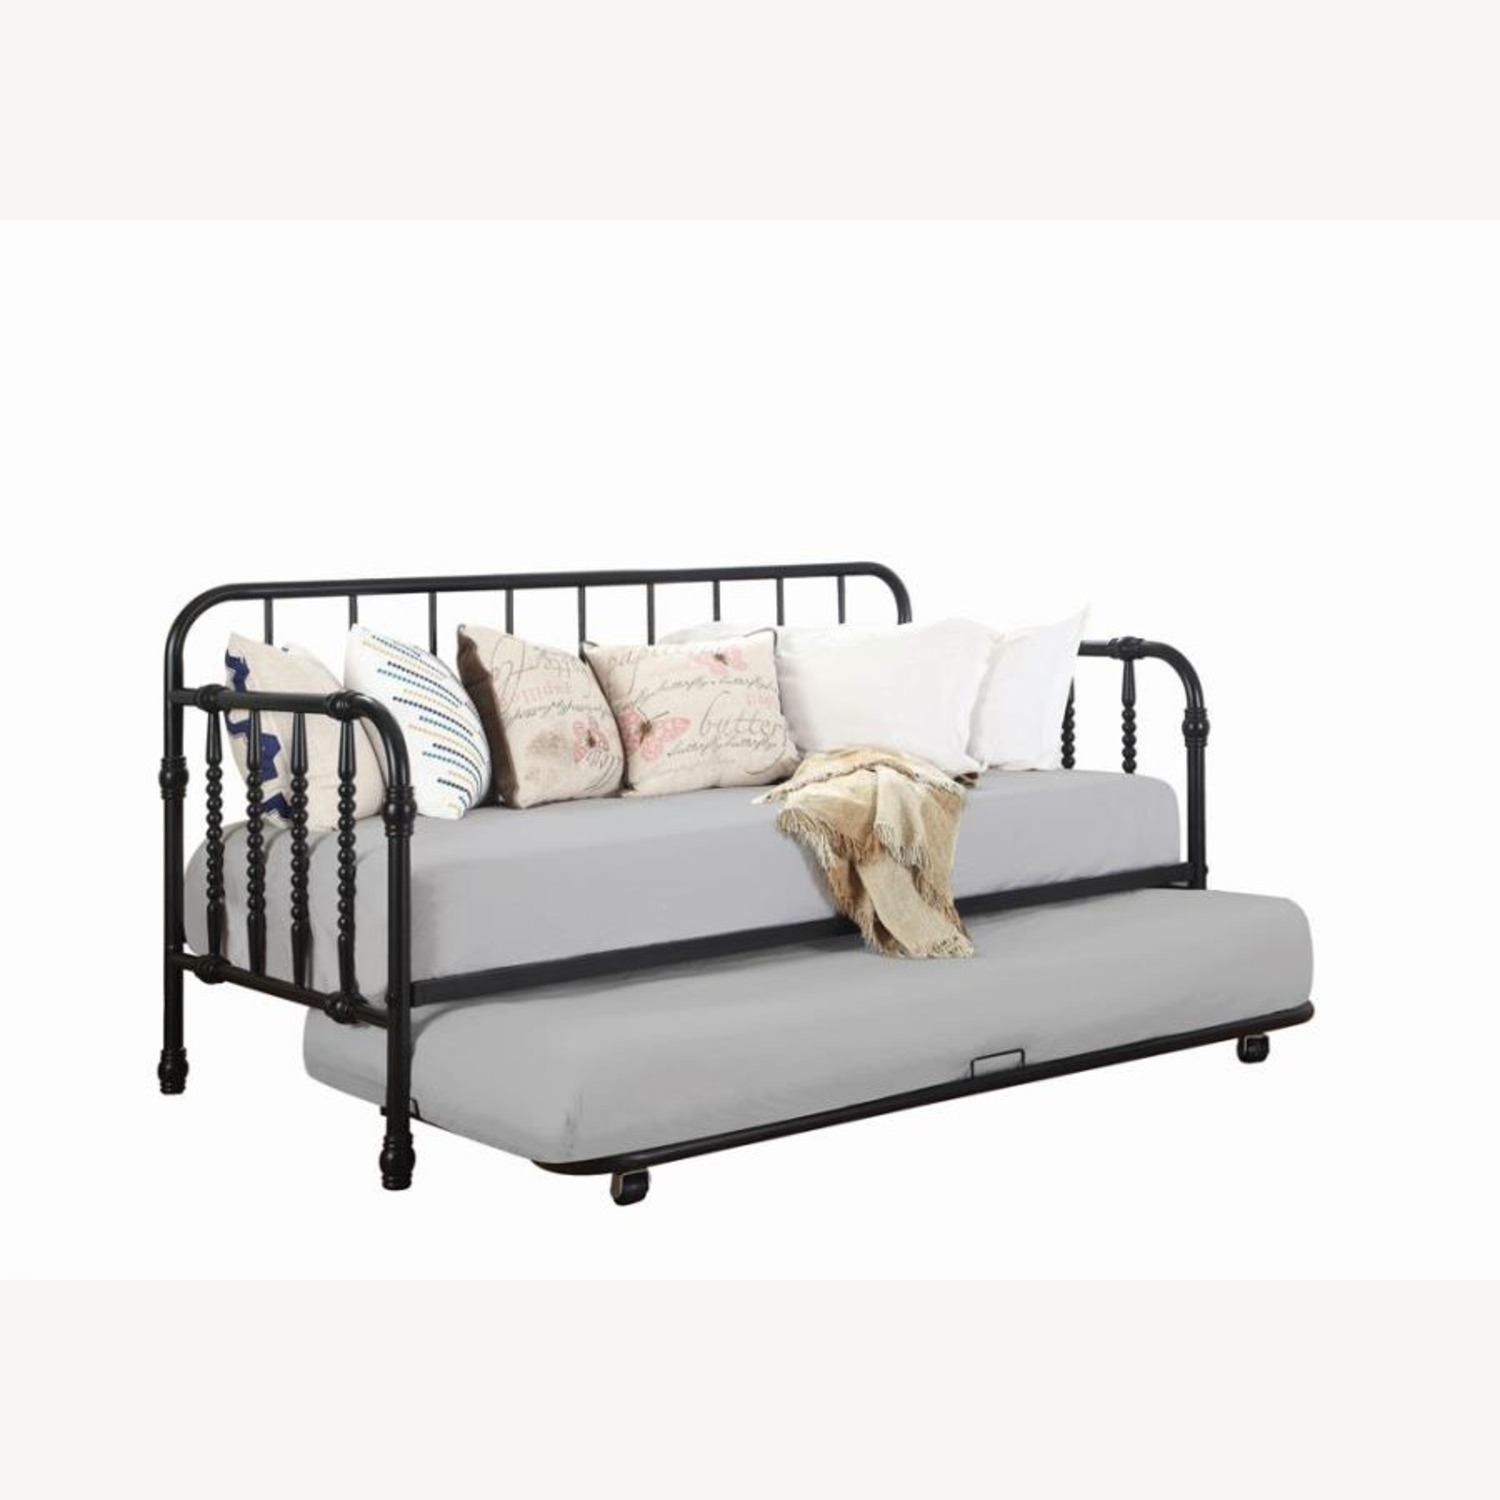 Twin Daybed In Black Metal Finish W/ Trundle - image-1